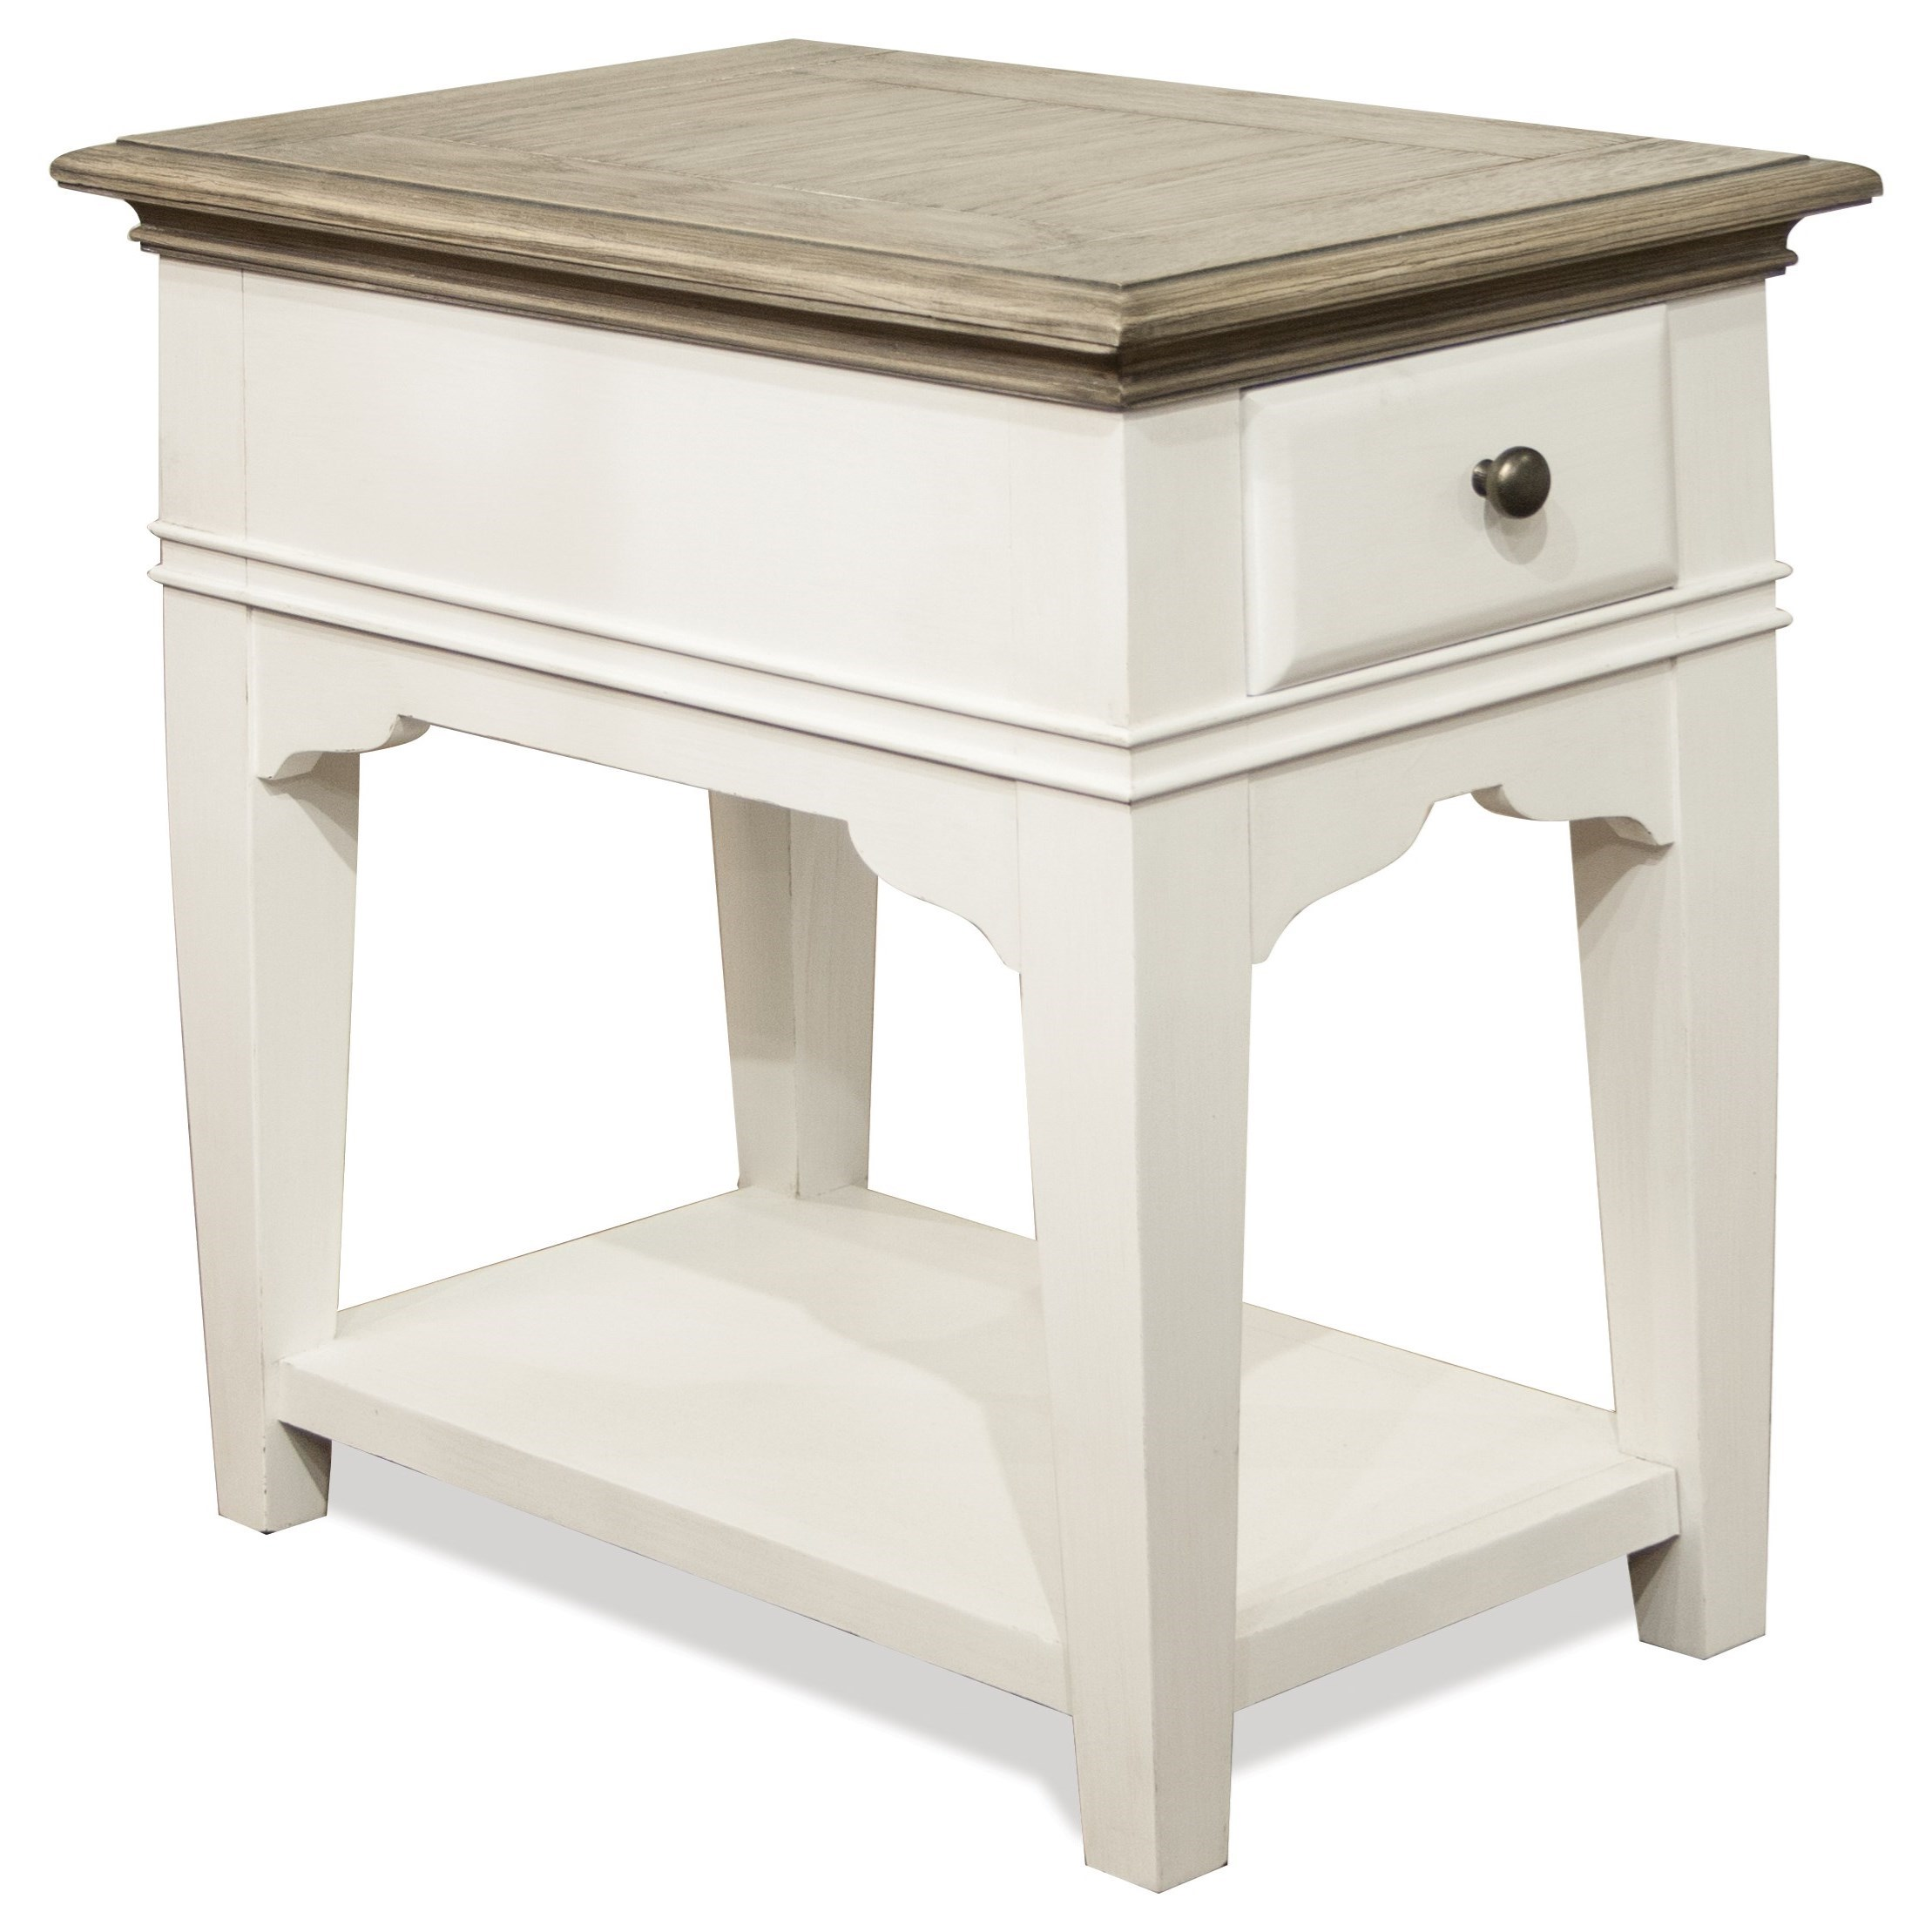 Myra Chairside Table by Riverside Furniture at Johnny Janosik